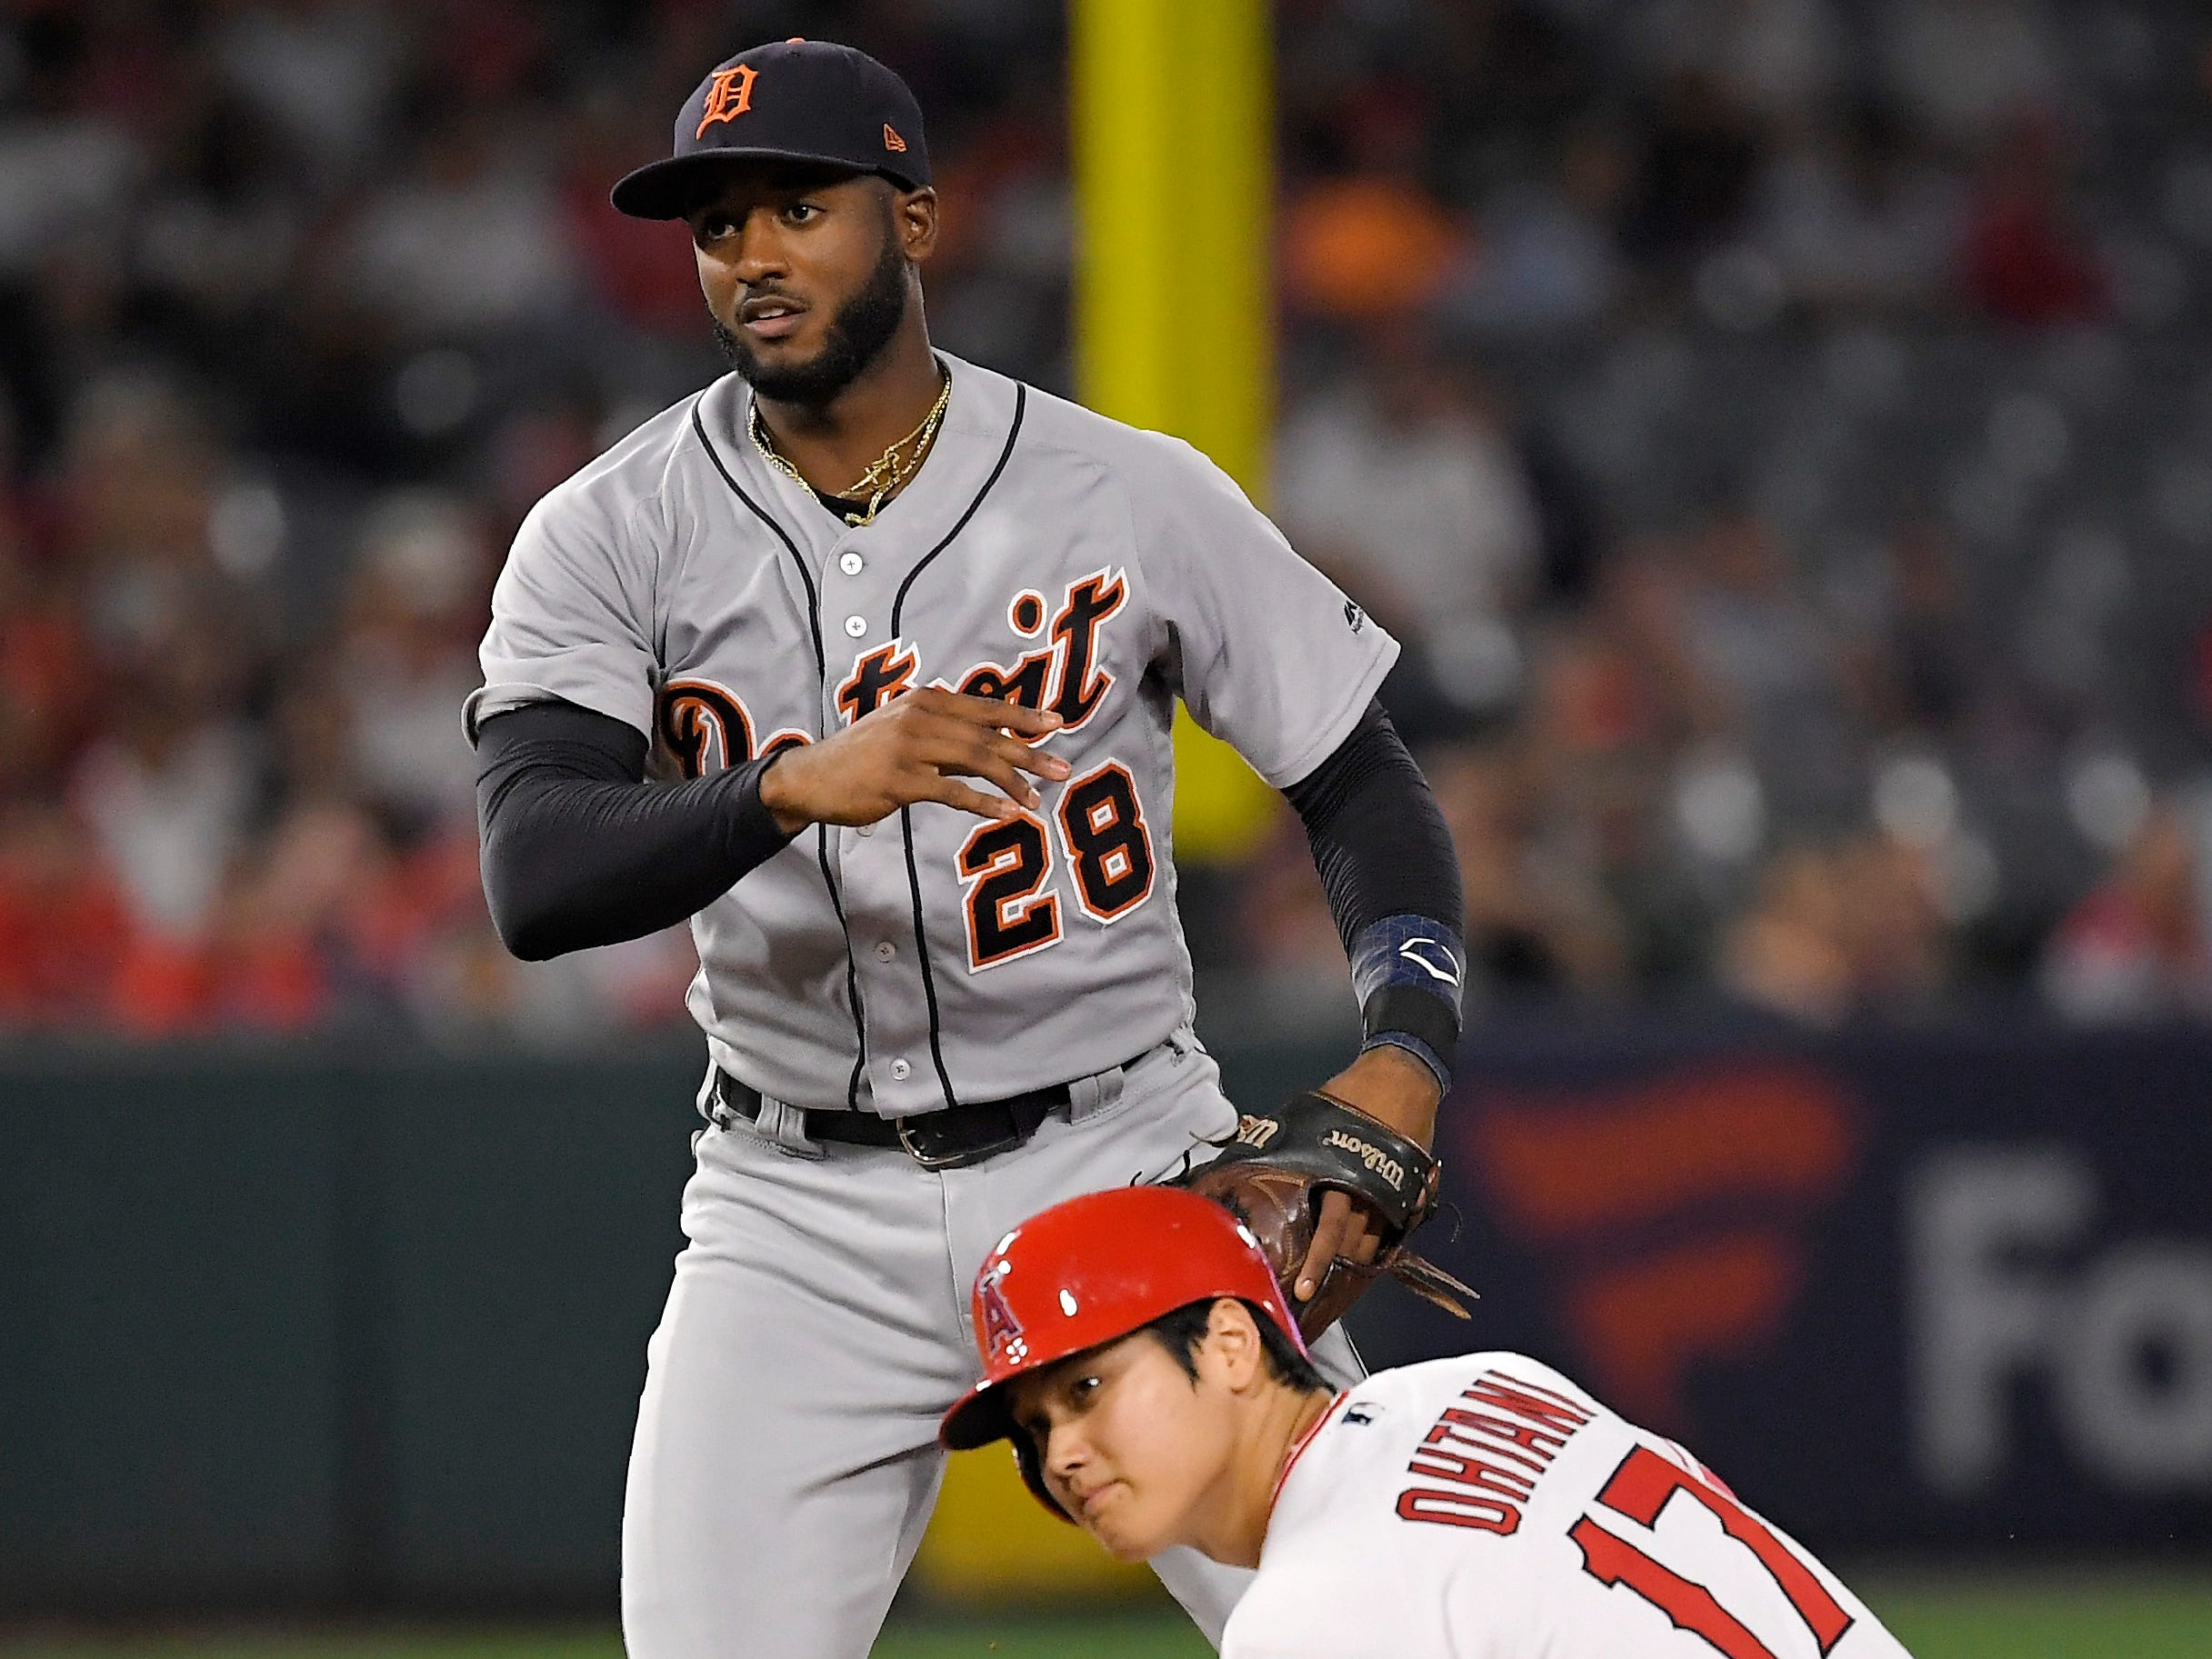 Angels designated hitter Shohei Ohtani is forced out at second as Tigers second baseman Niko Goodrum throws out Andrelton Simmons at first during the sixth inning on Monday, Aug. 6, 2018, in Anaheim, Calif.